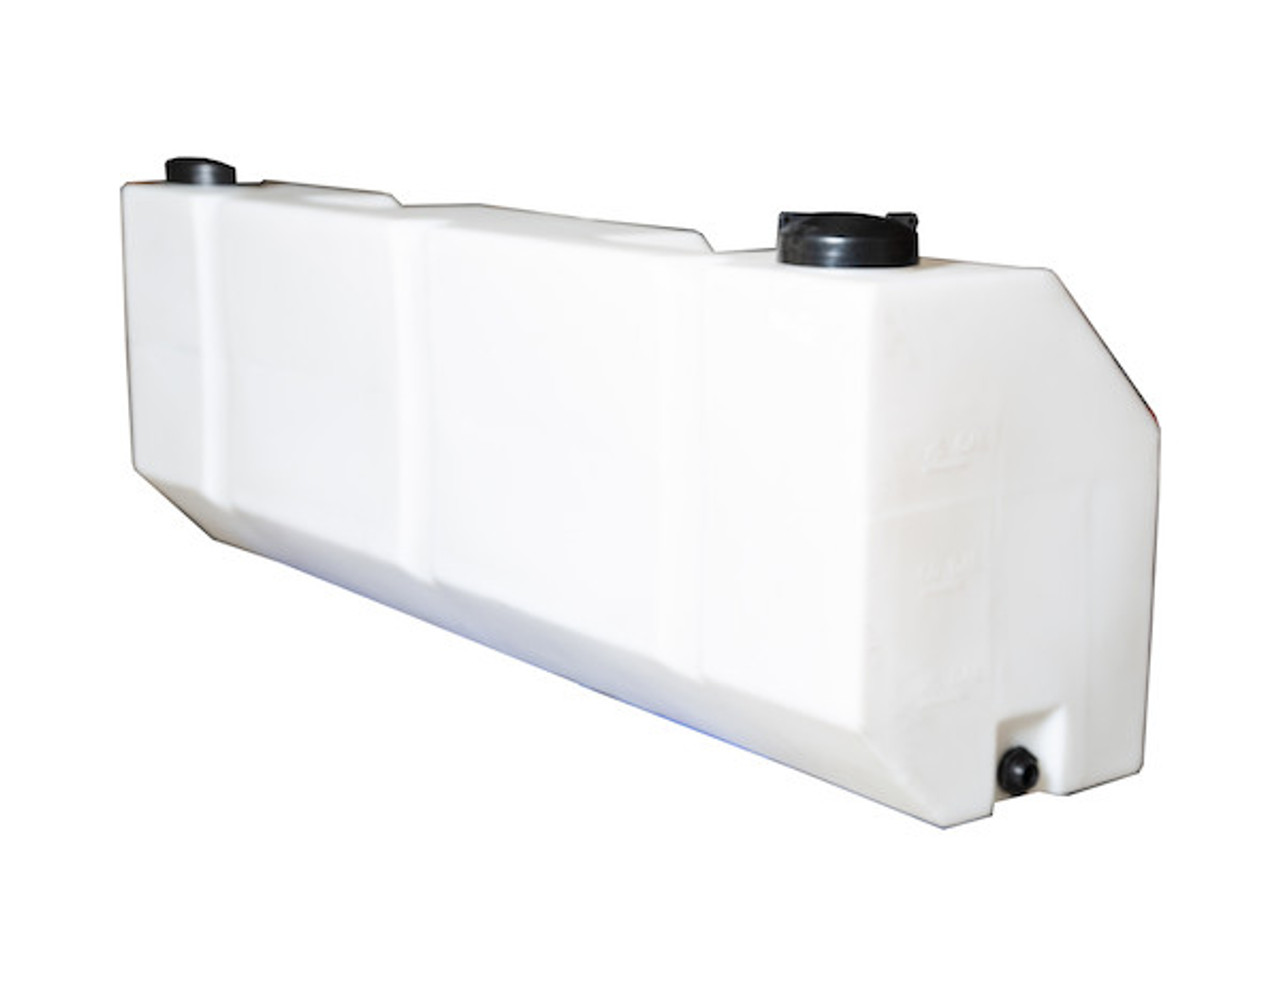 LS4H Buyers SaltDogg  Pre-Wet Kit With One 105-Gallon Wedge Poly V-Box Mount Reservoir  Picture # 3